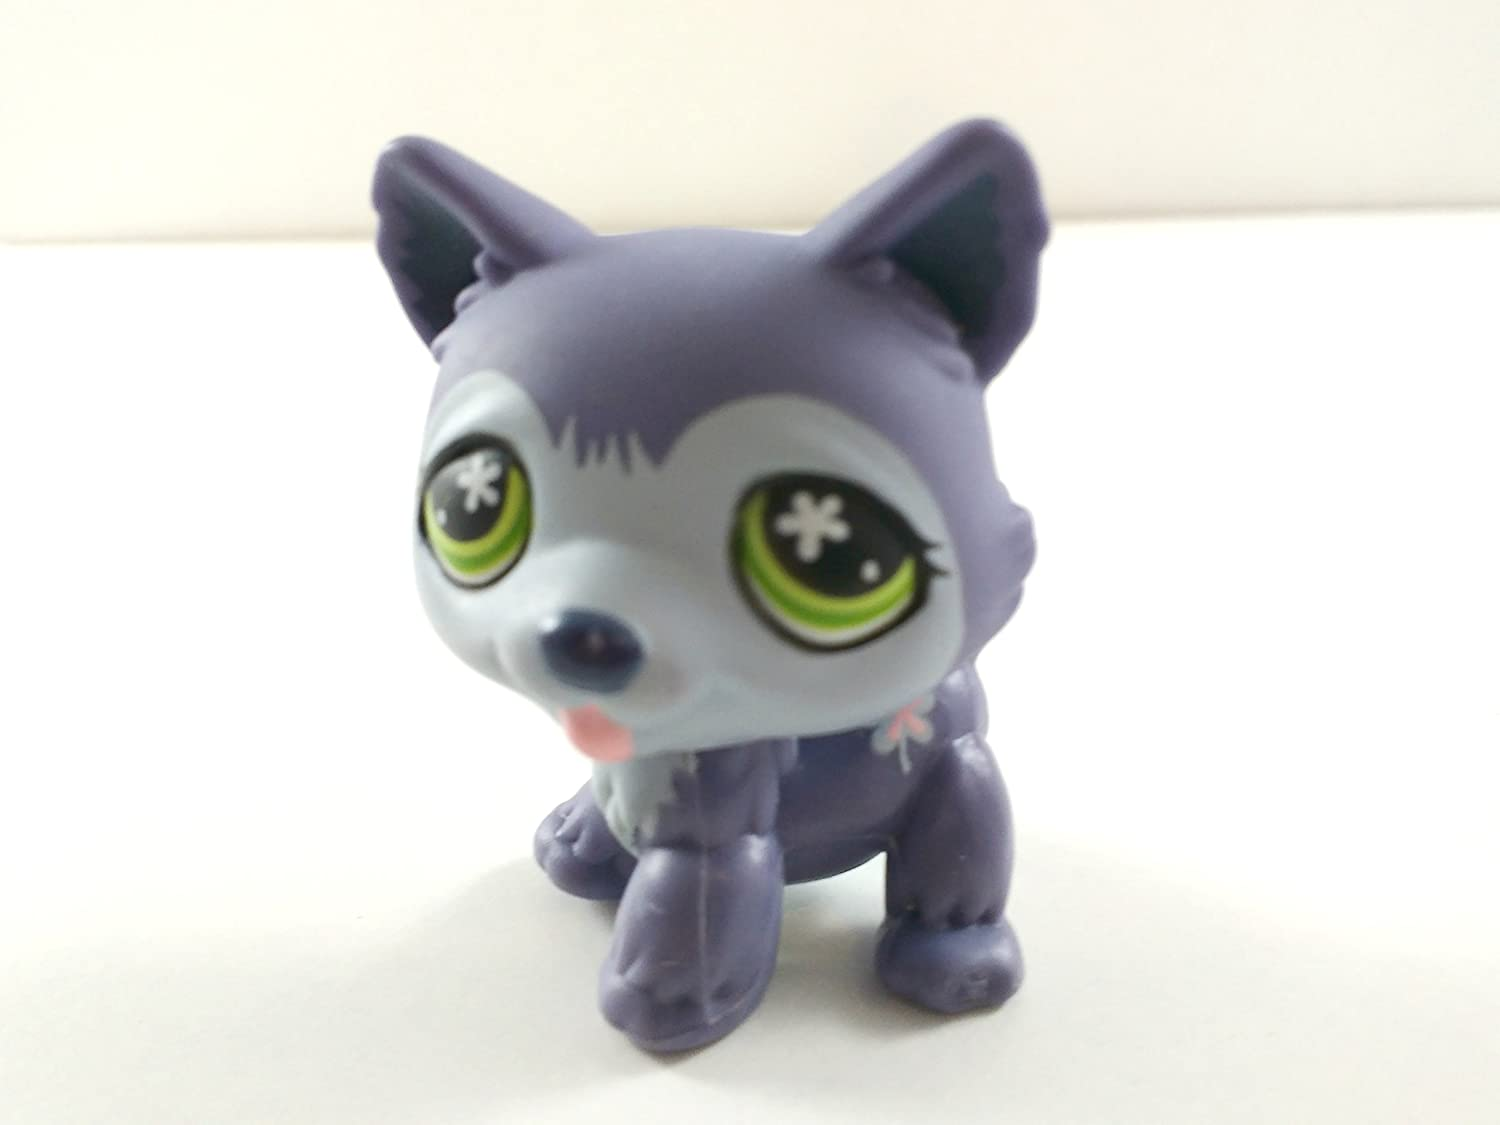 Blue, Green Eyes Collector Toy Loose Husky #487 LPS Collectible Replacement Single Figure - Littlest Pet Shop OOP Out of Package /& Print Retired